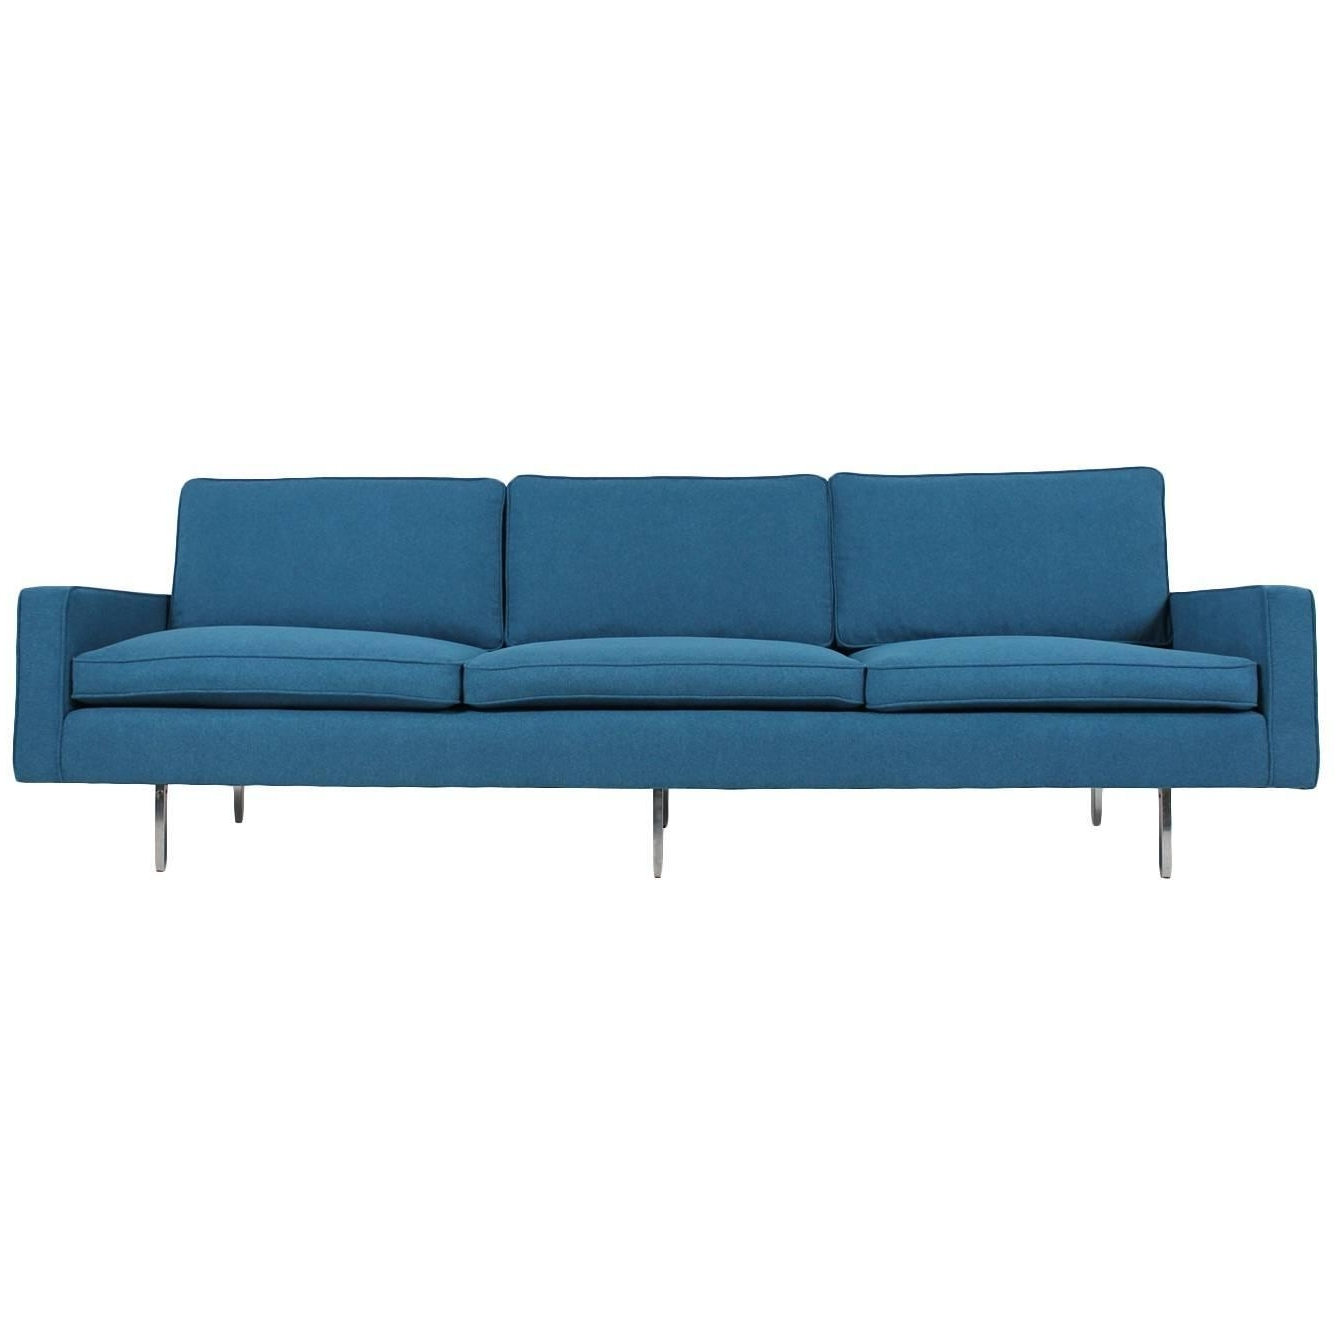 Widely Used Florence Knoll Sofas – 61 For Sale At 1stdibs Within Florence Grand Sofas (View 5 of 20)